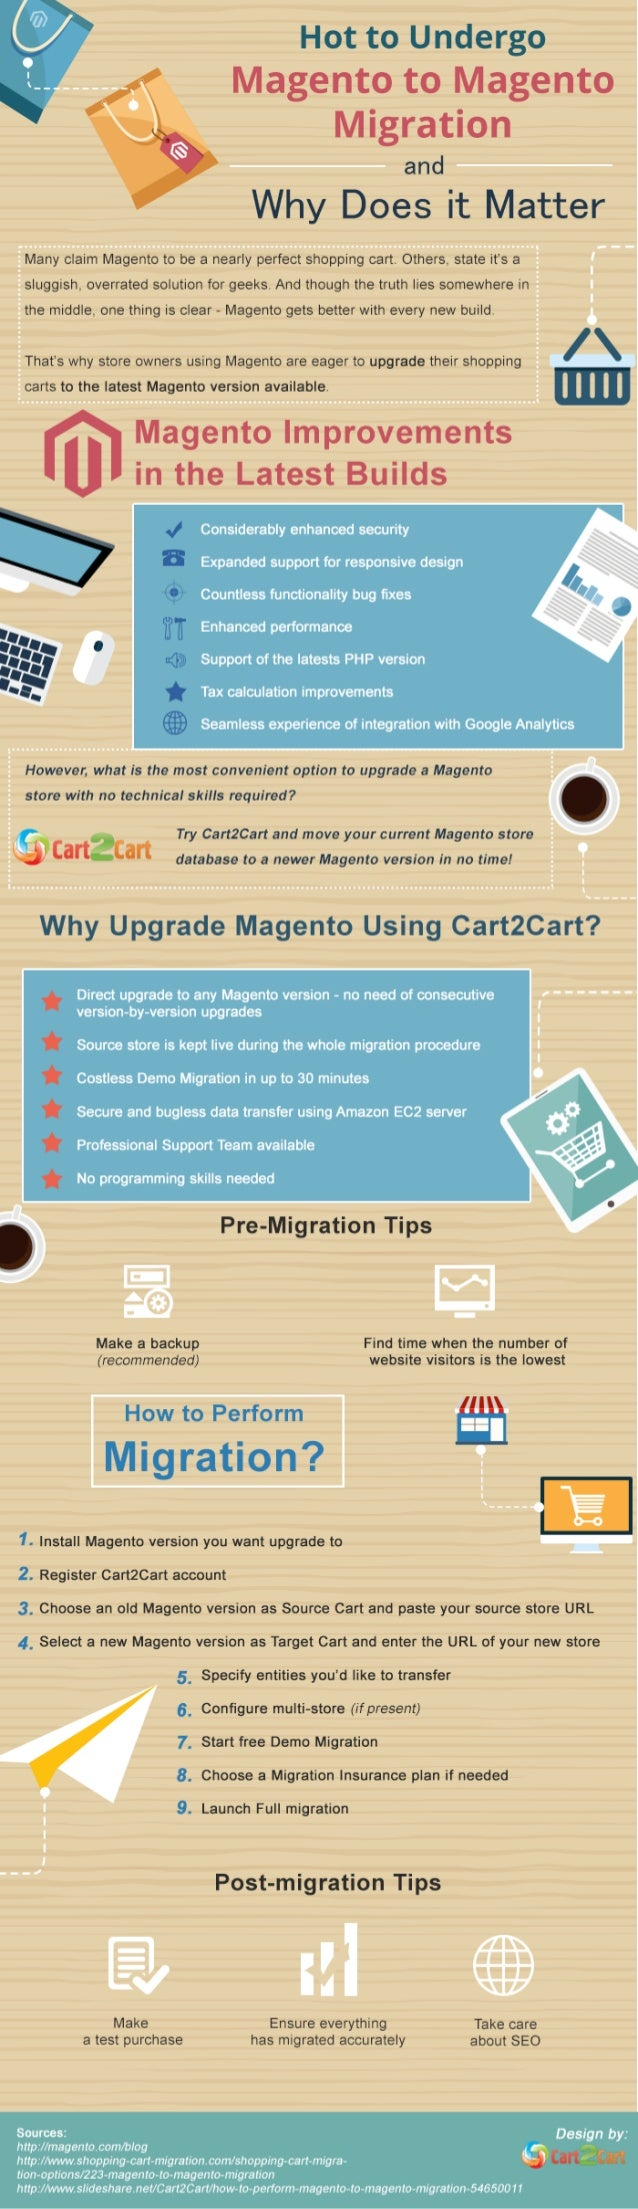 Hot to Undergo Magento to Magento Migration  and  Why Does it Matter  Many claim Magento to be a nearly perfect shopping c...